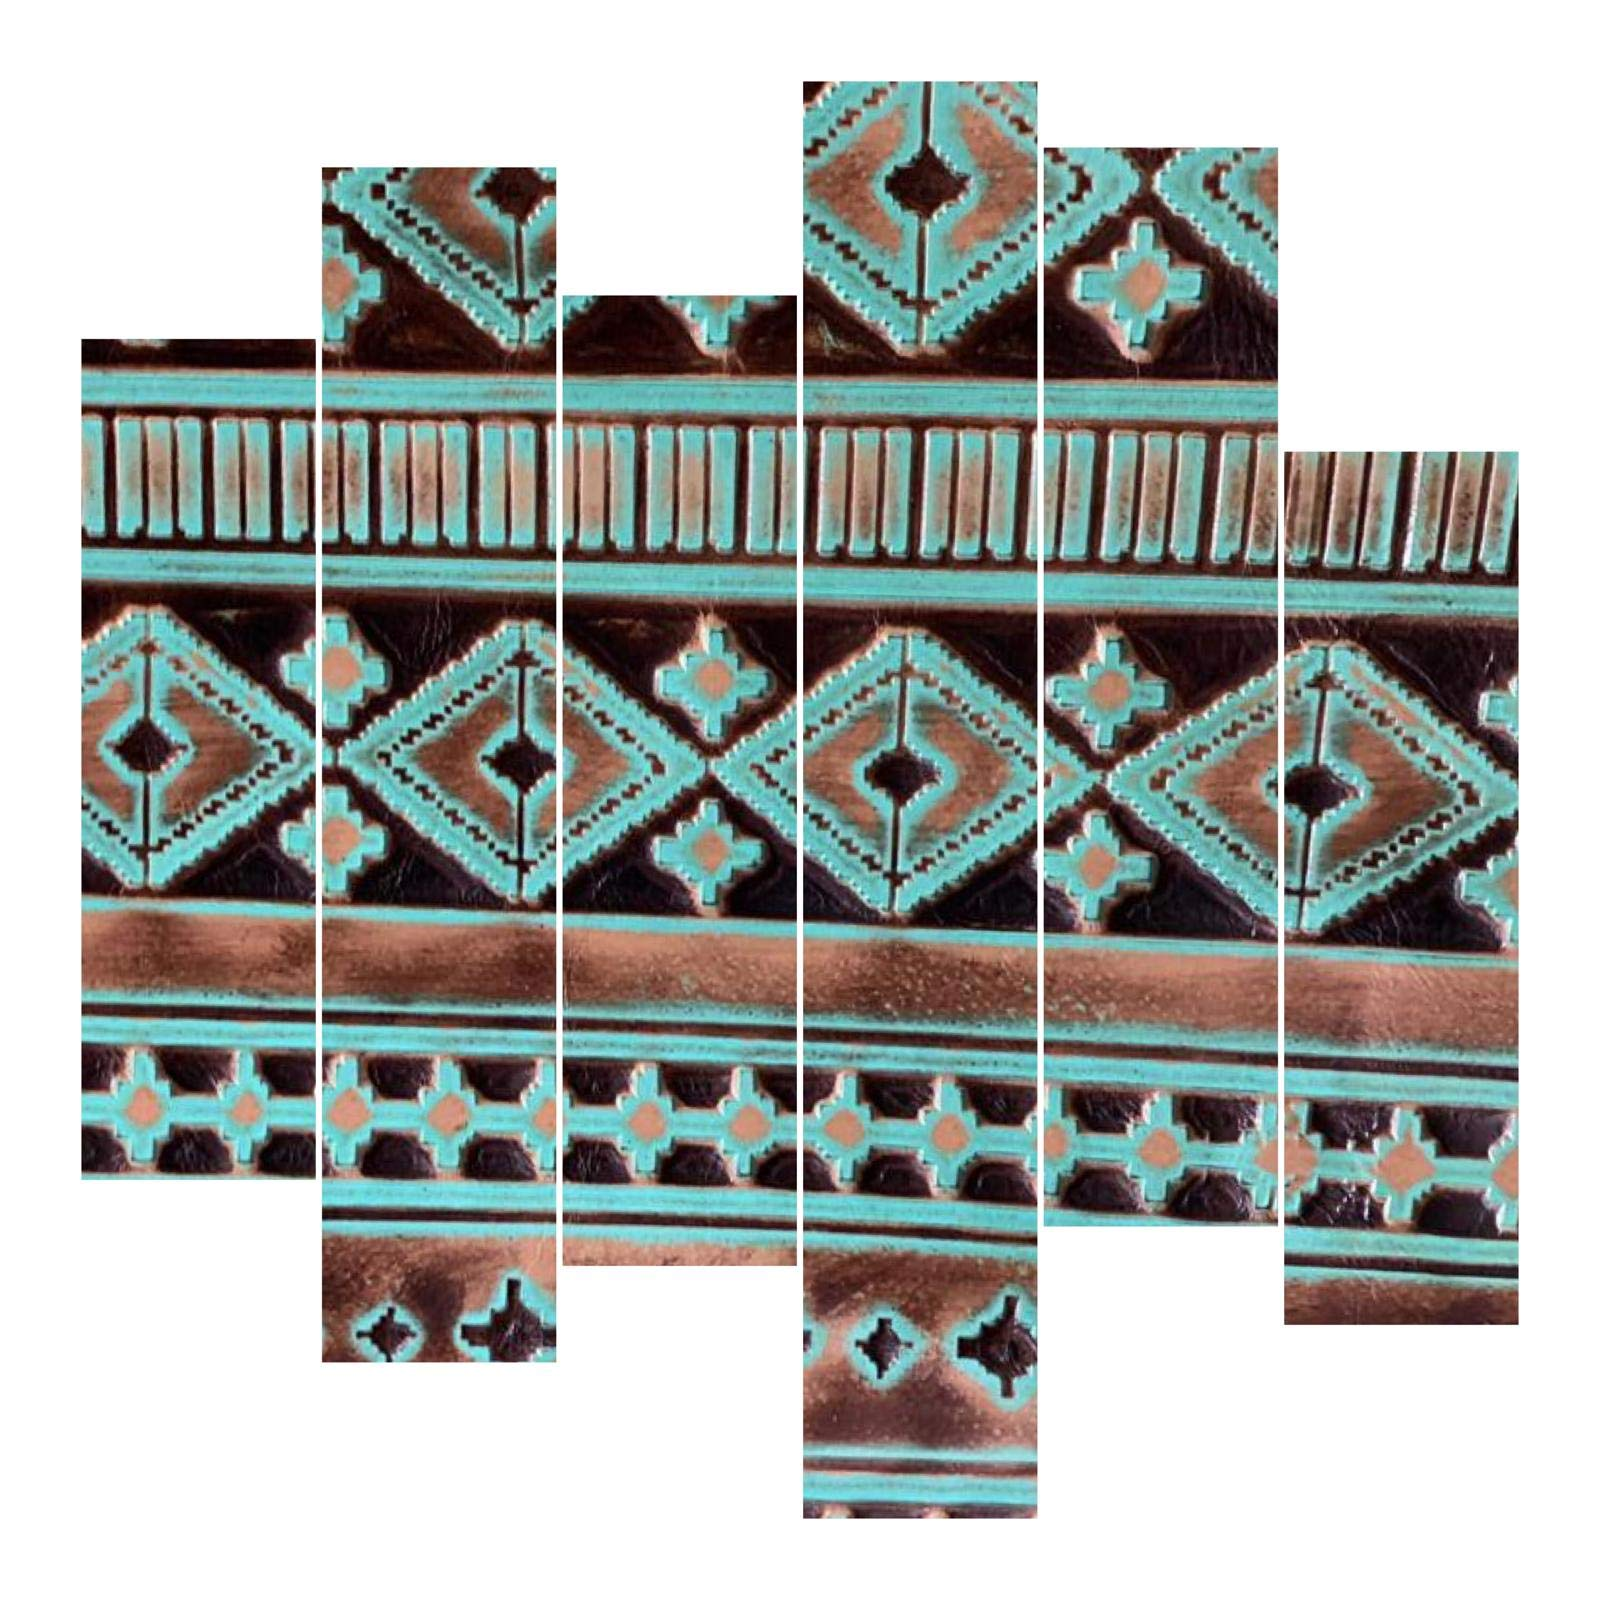 Embossed Leather Navajo Turquoise, Cut to Size, Leatherworking, Leather Sheets for Bags, Wallets, Earrings, Upholstery (30x30 inch)